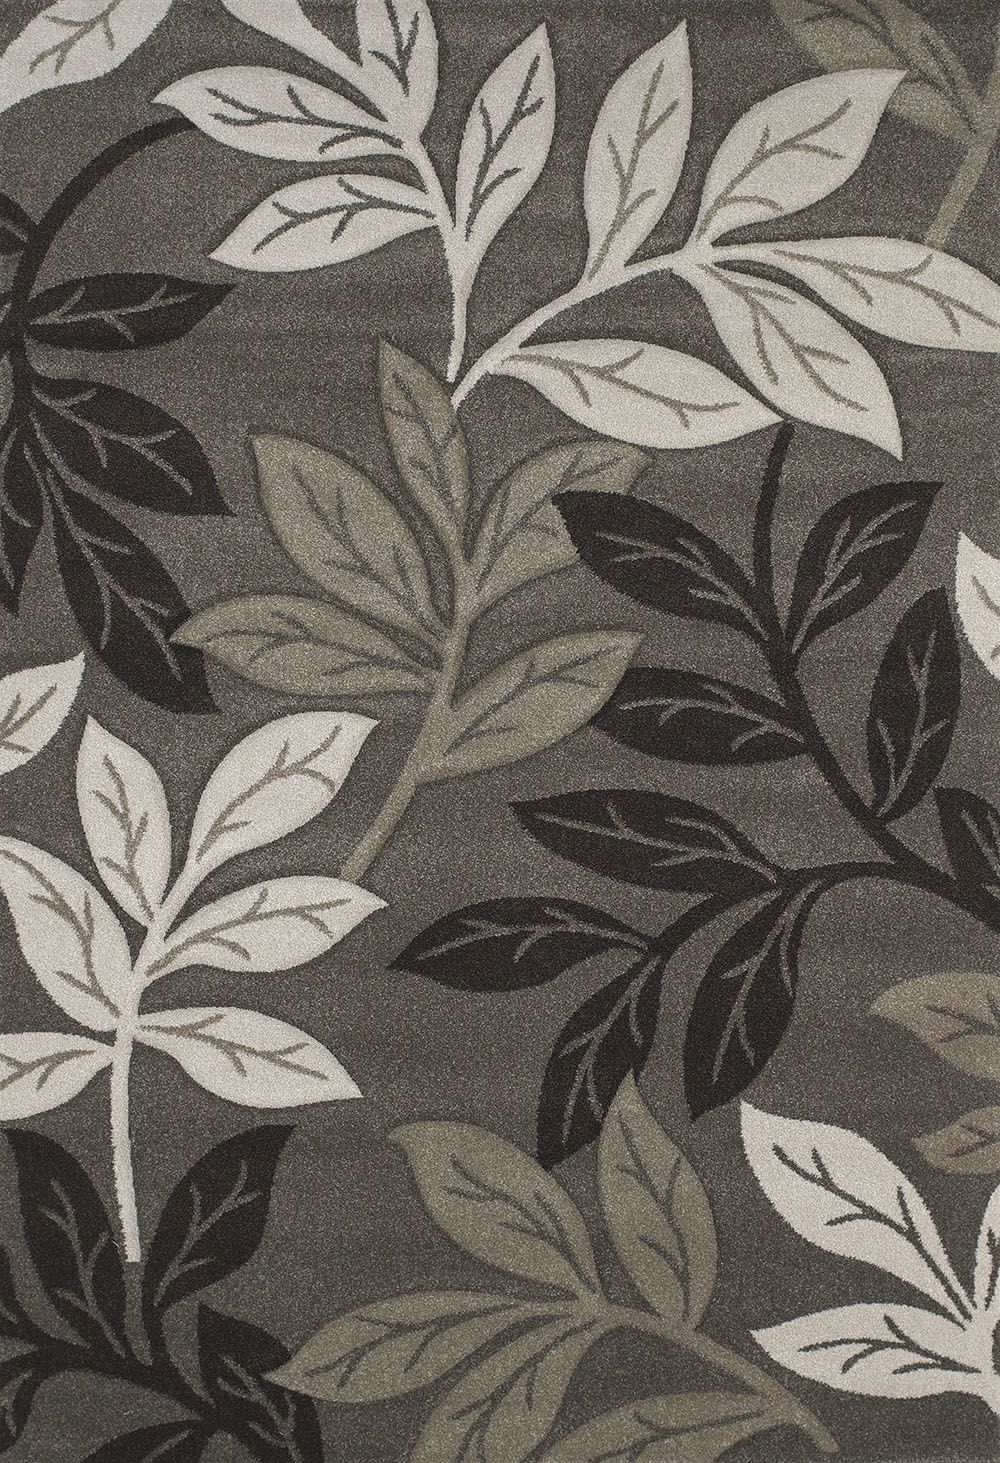 united weavers townshend  freestyle country & floral area rug collection